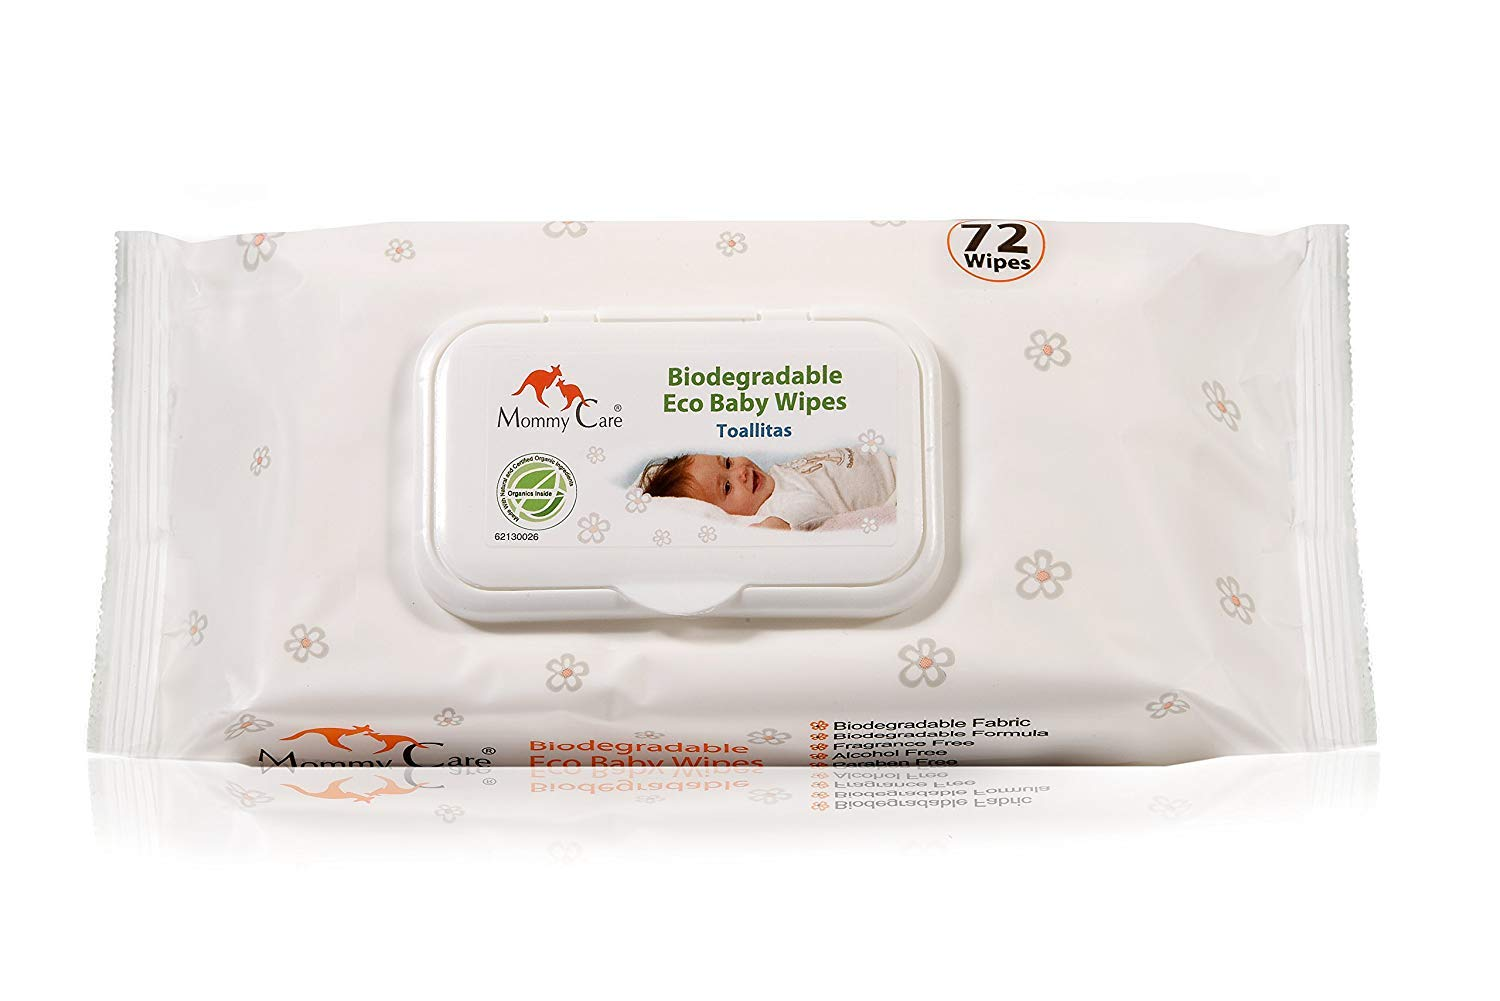 Amazon.com : Mommy Care Organic Biodegradable Eco Baby Wipes - SLS and Paraben Free Gently Fragranced Natural Formula Perfect for Babies Sensitive Skin.